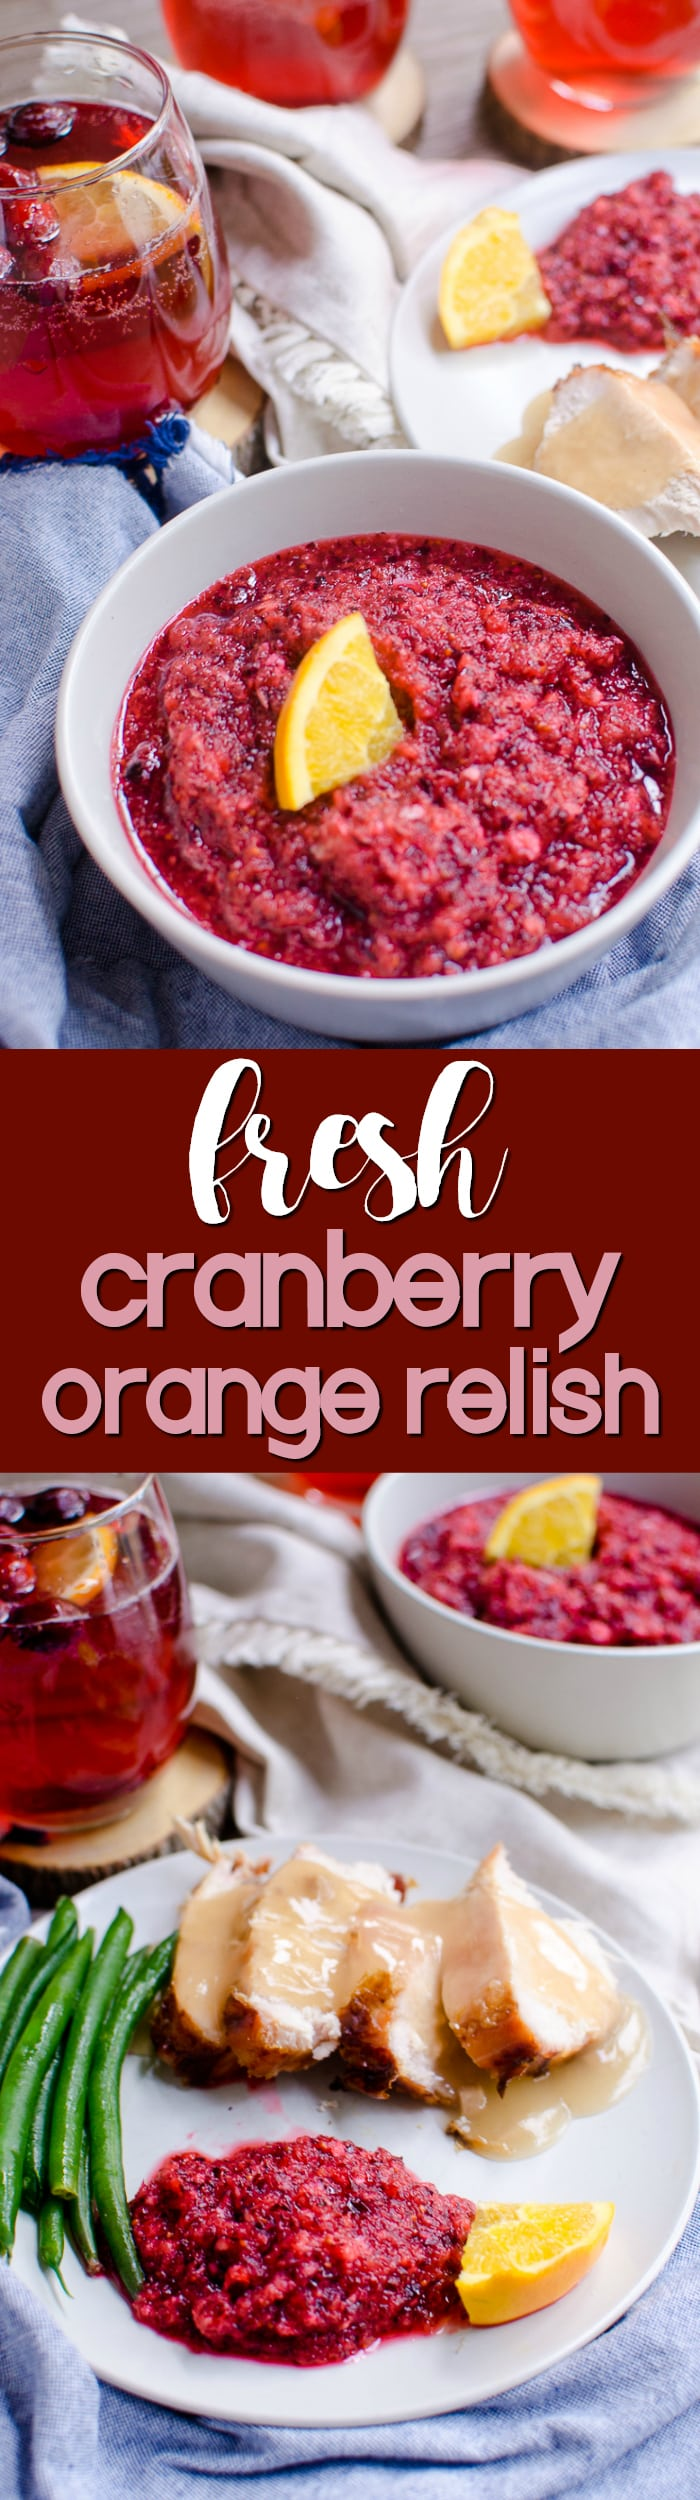 This sweet-tart cranberry orange relish is a simple and delicious addition to holiday menus.